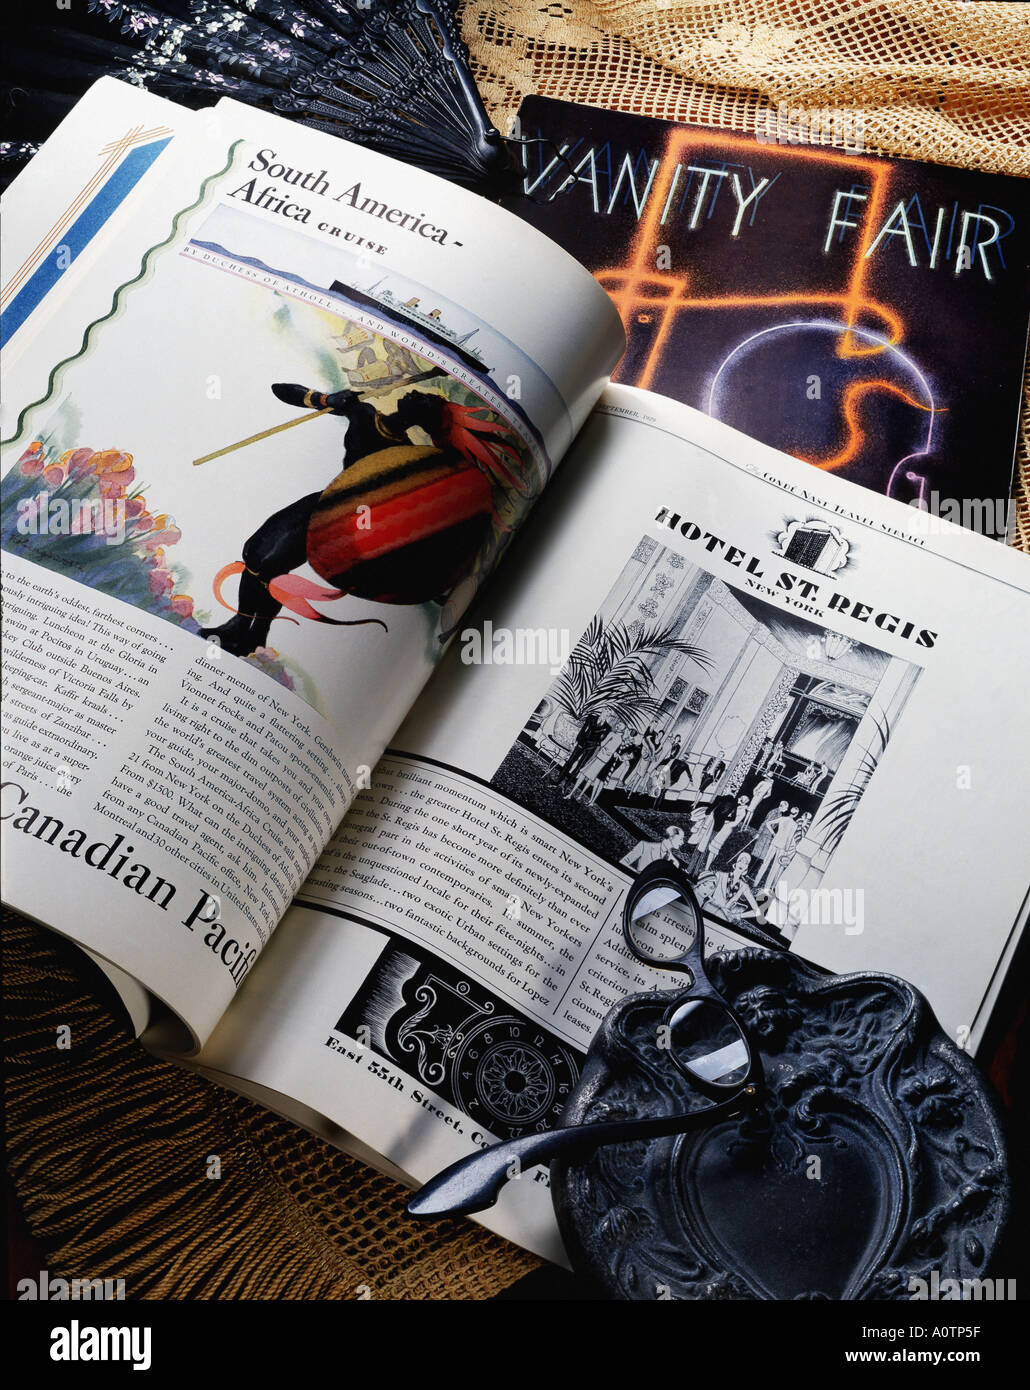 Still life of vintage Vanity Fair magazines Showing a